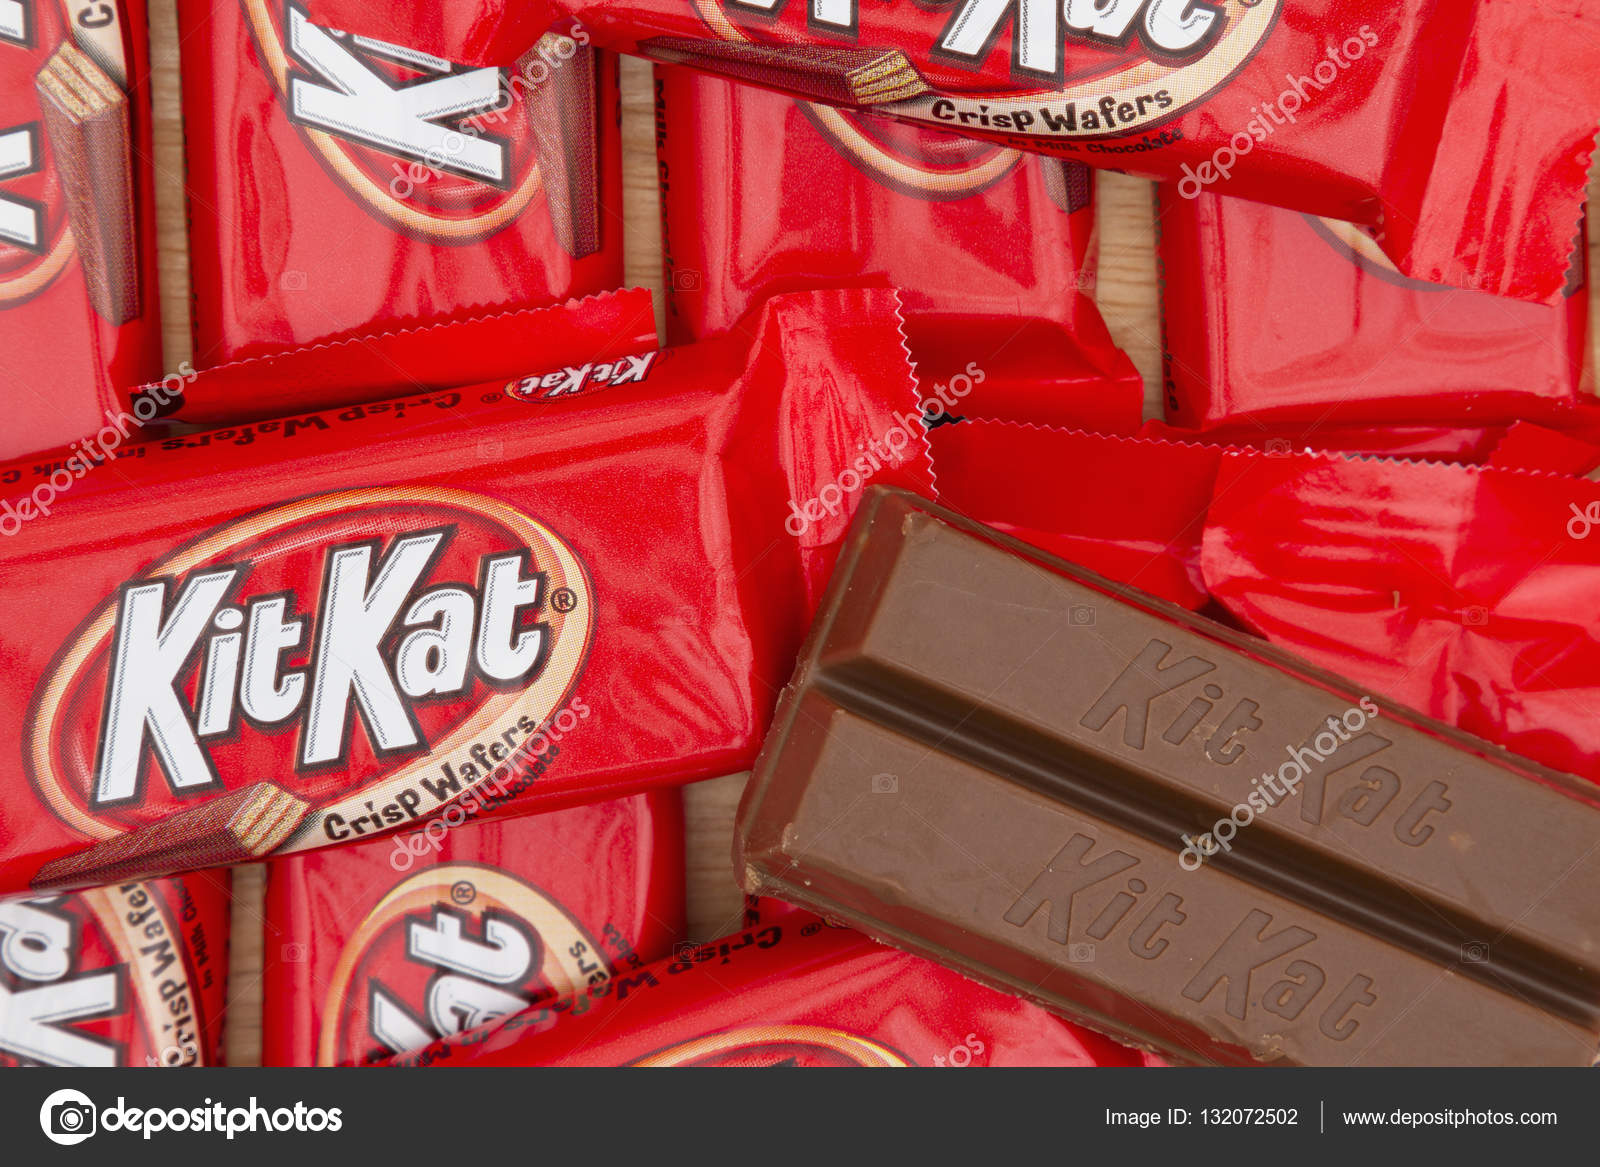 Editorial image of kitkat chocolate candy bar background stock editorial image of kitkat chocolate candy bar background kitkat chocolate bars are a favorite snack food in the usa and are used in a lot of dessert voltagebd Images